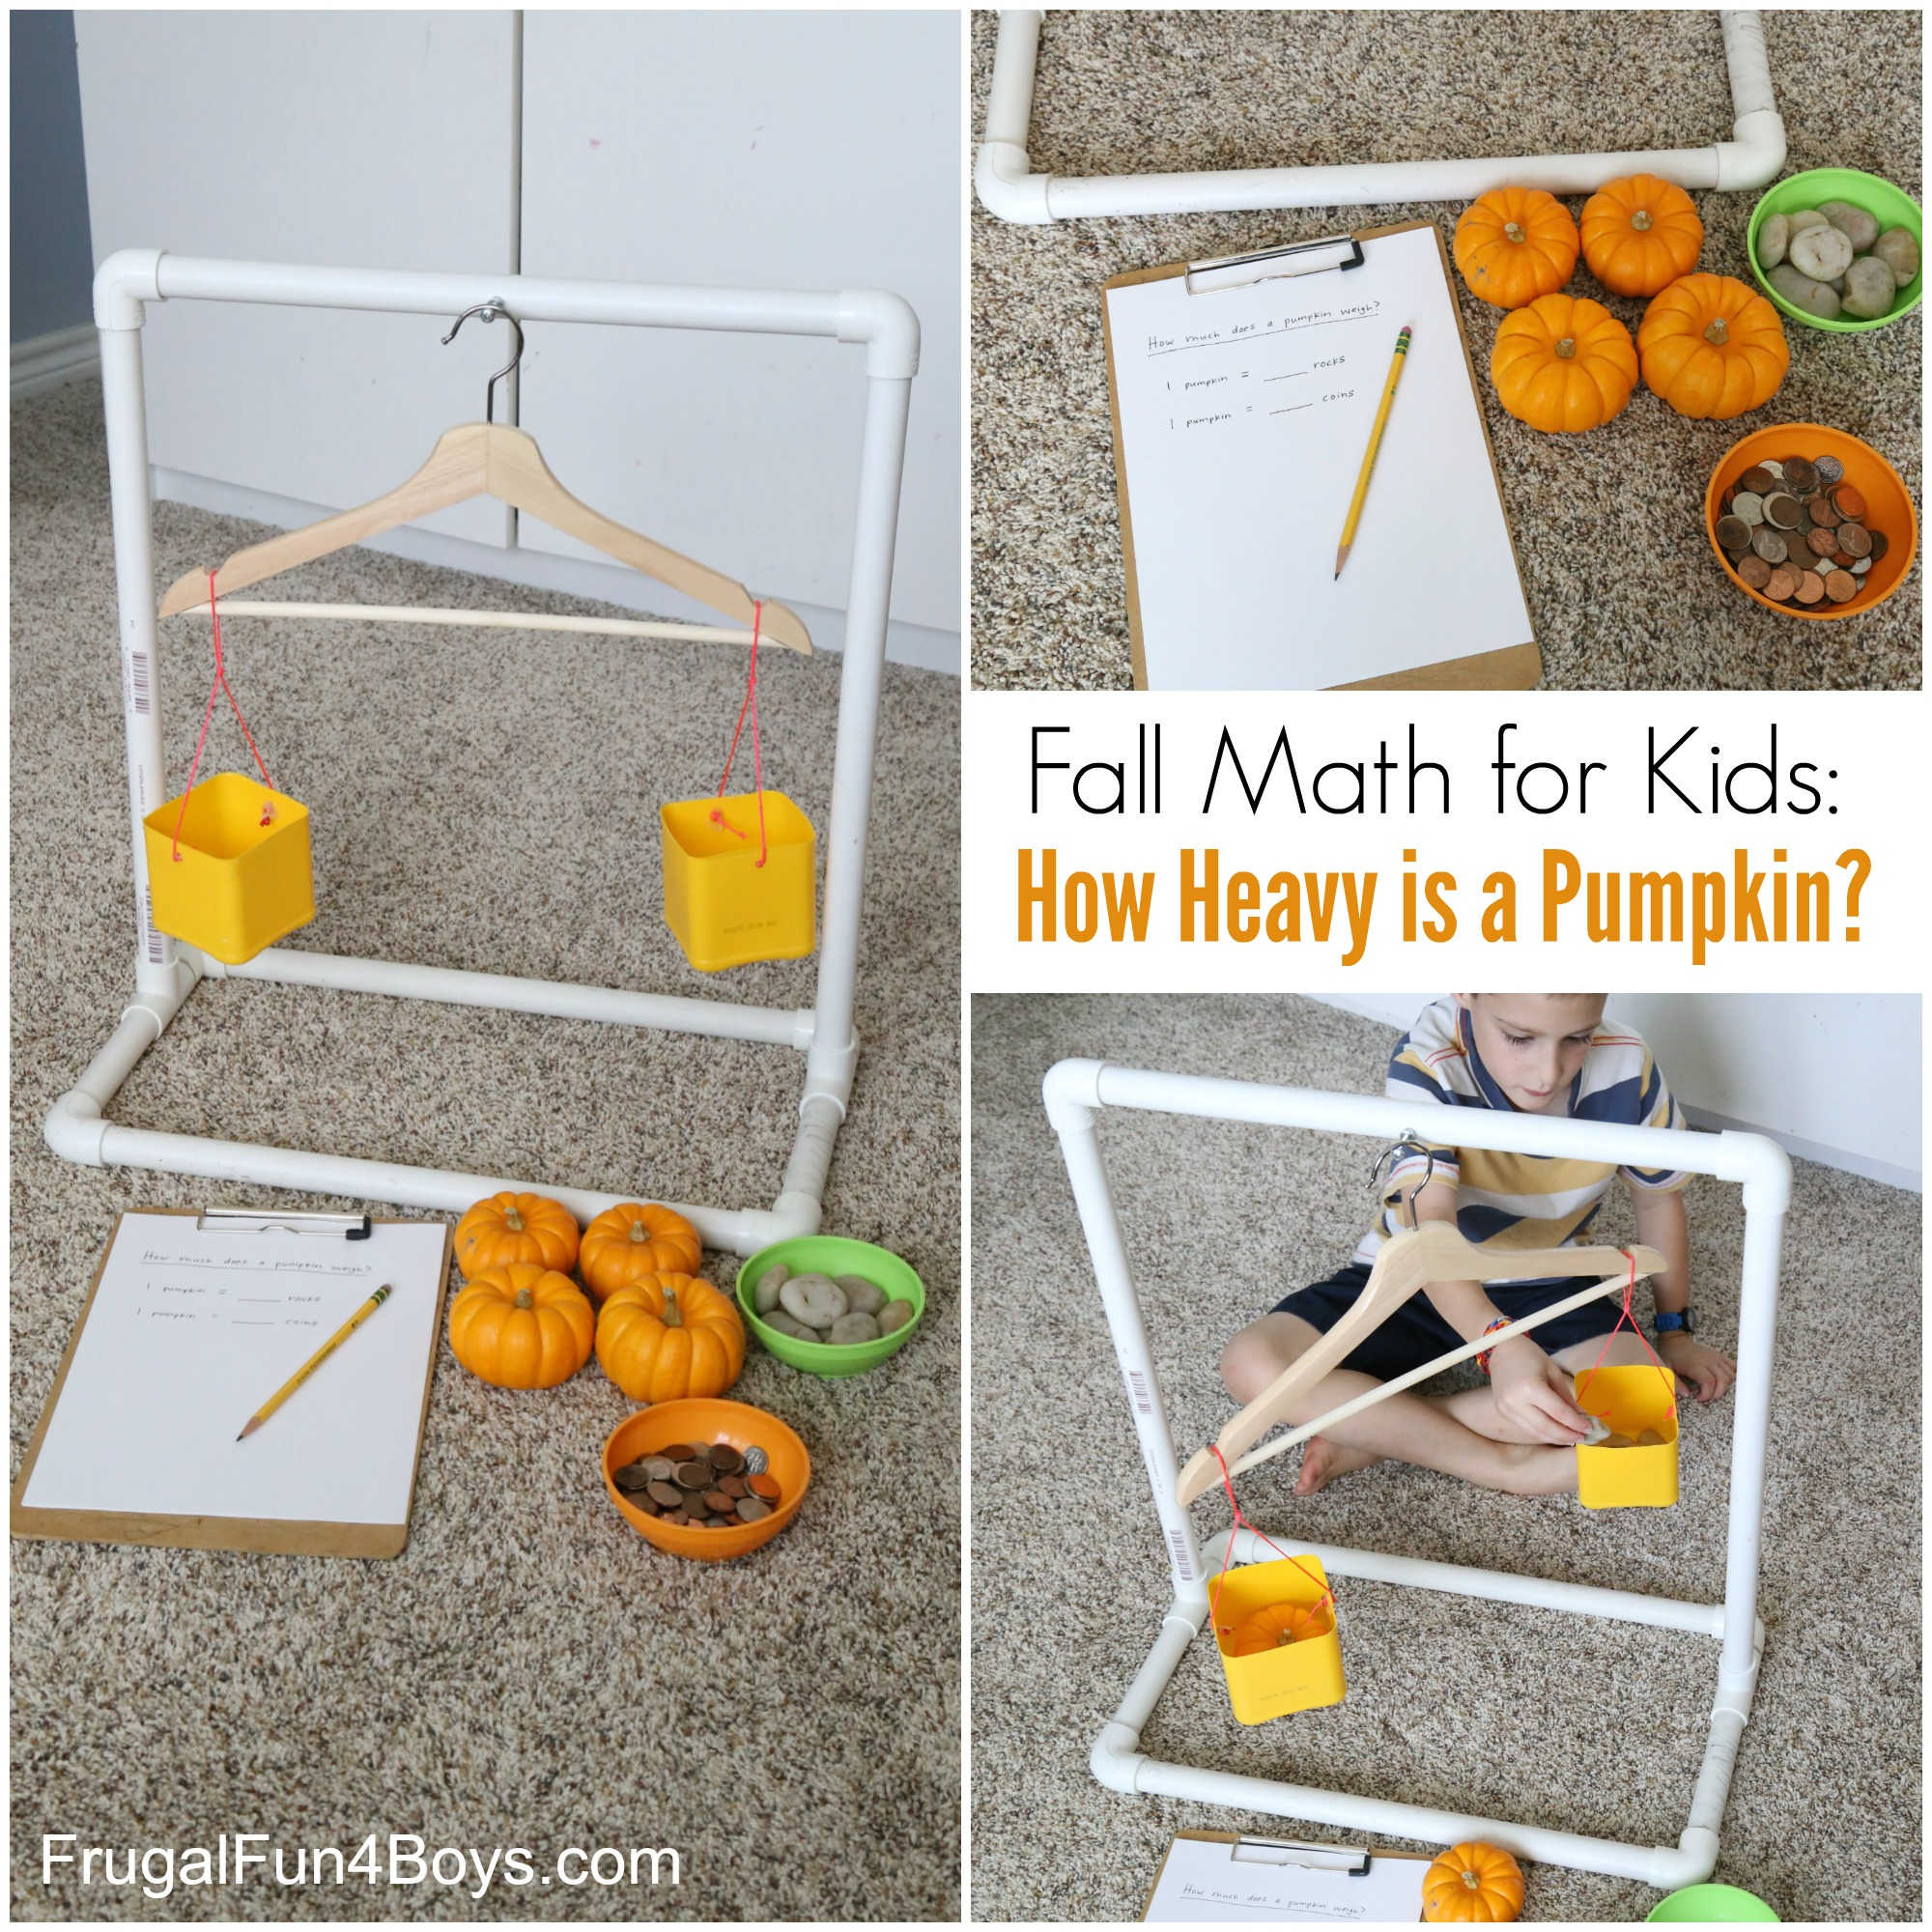 Fall Math for Kids: How Heavy is a Pumpkin?